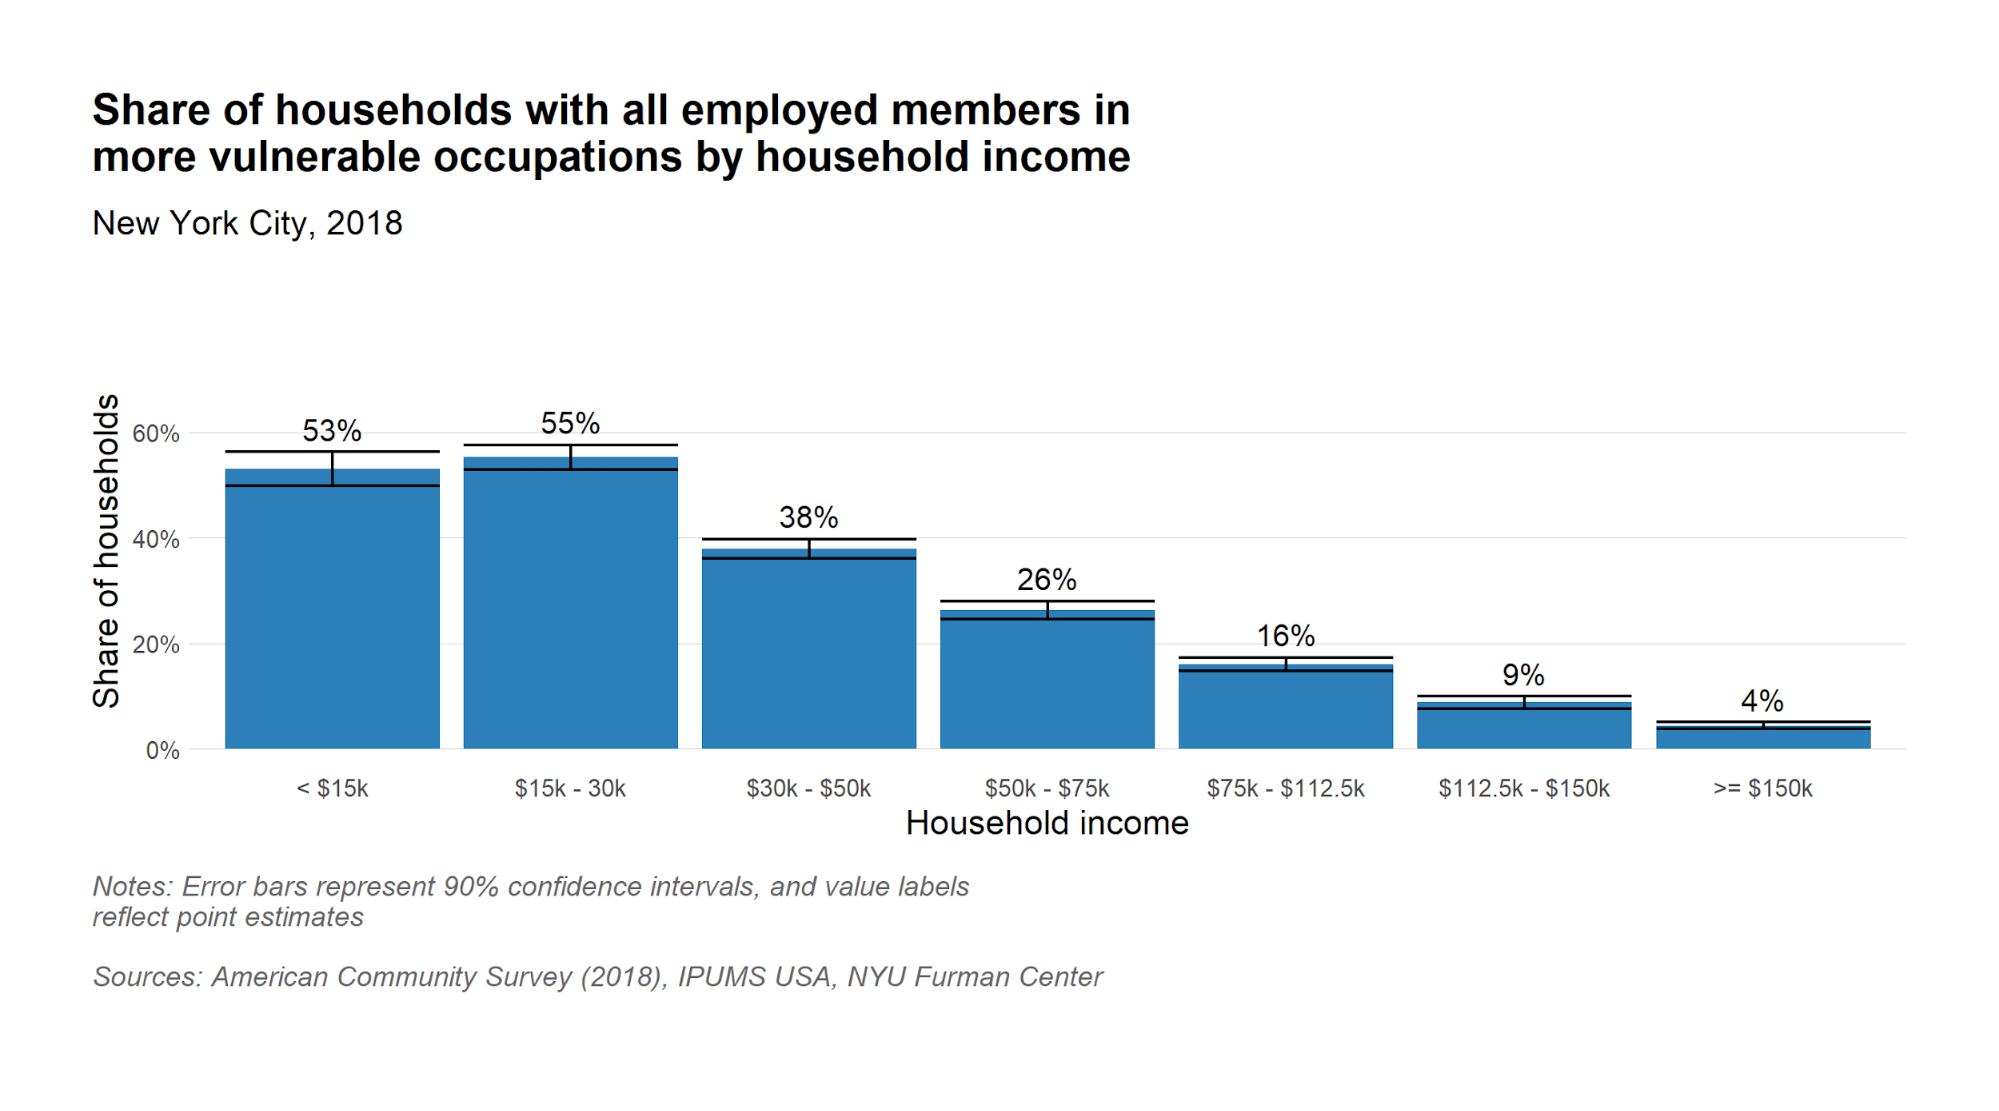 Share of households with all employed members in vulnerable occupation by household income